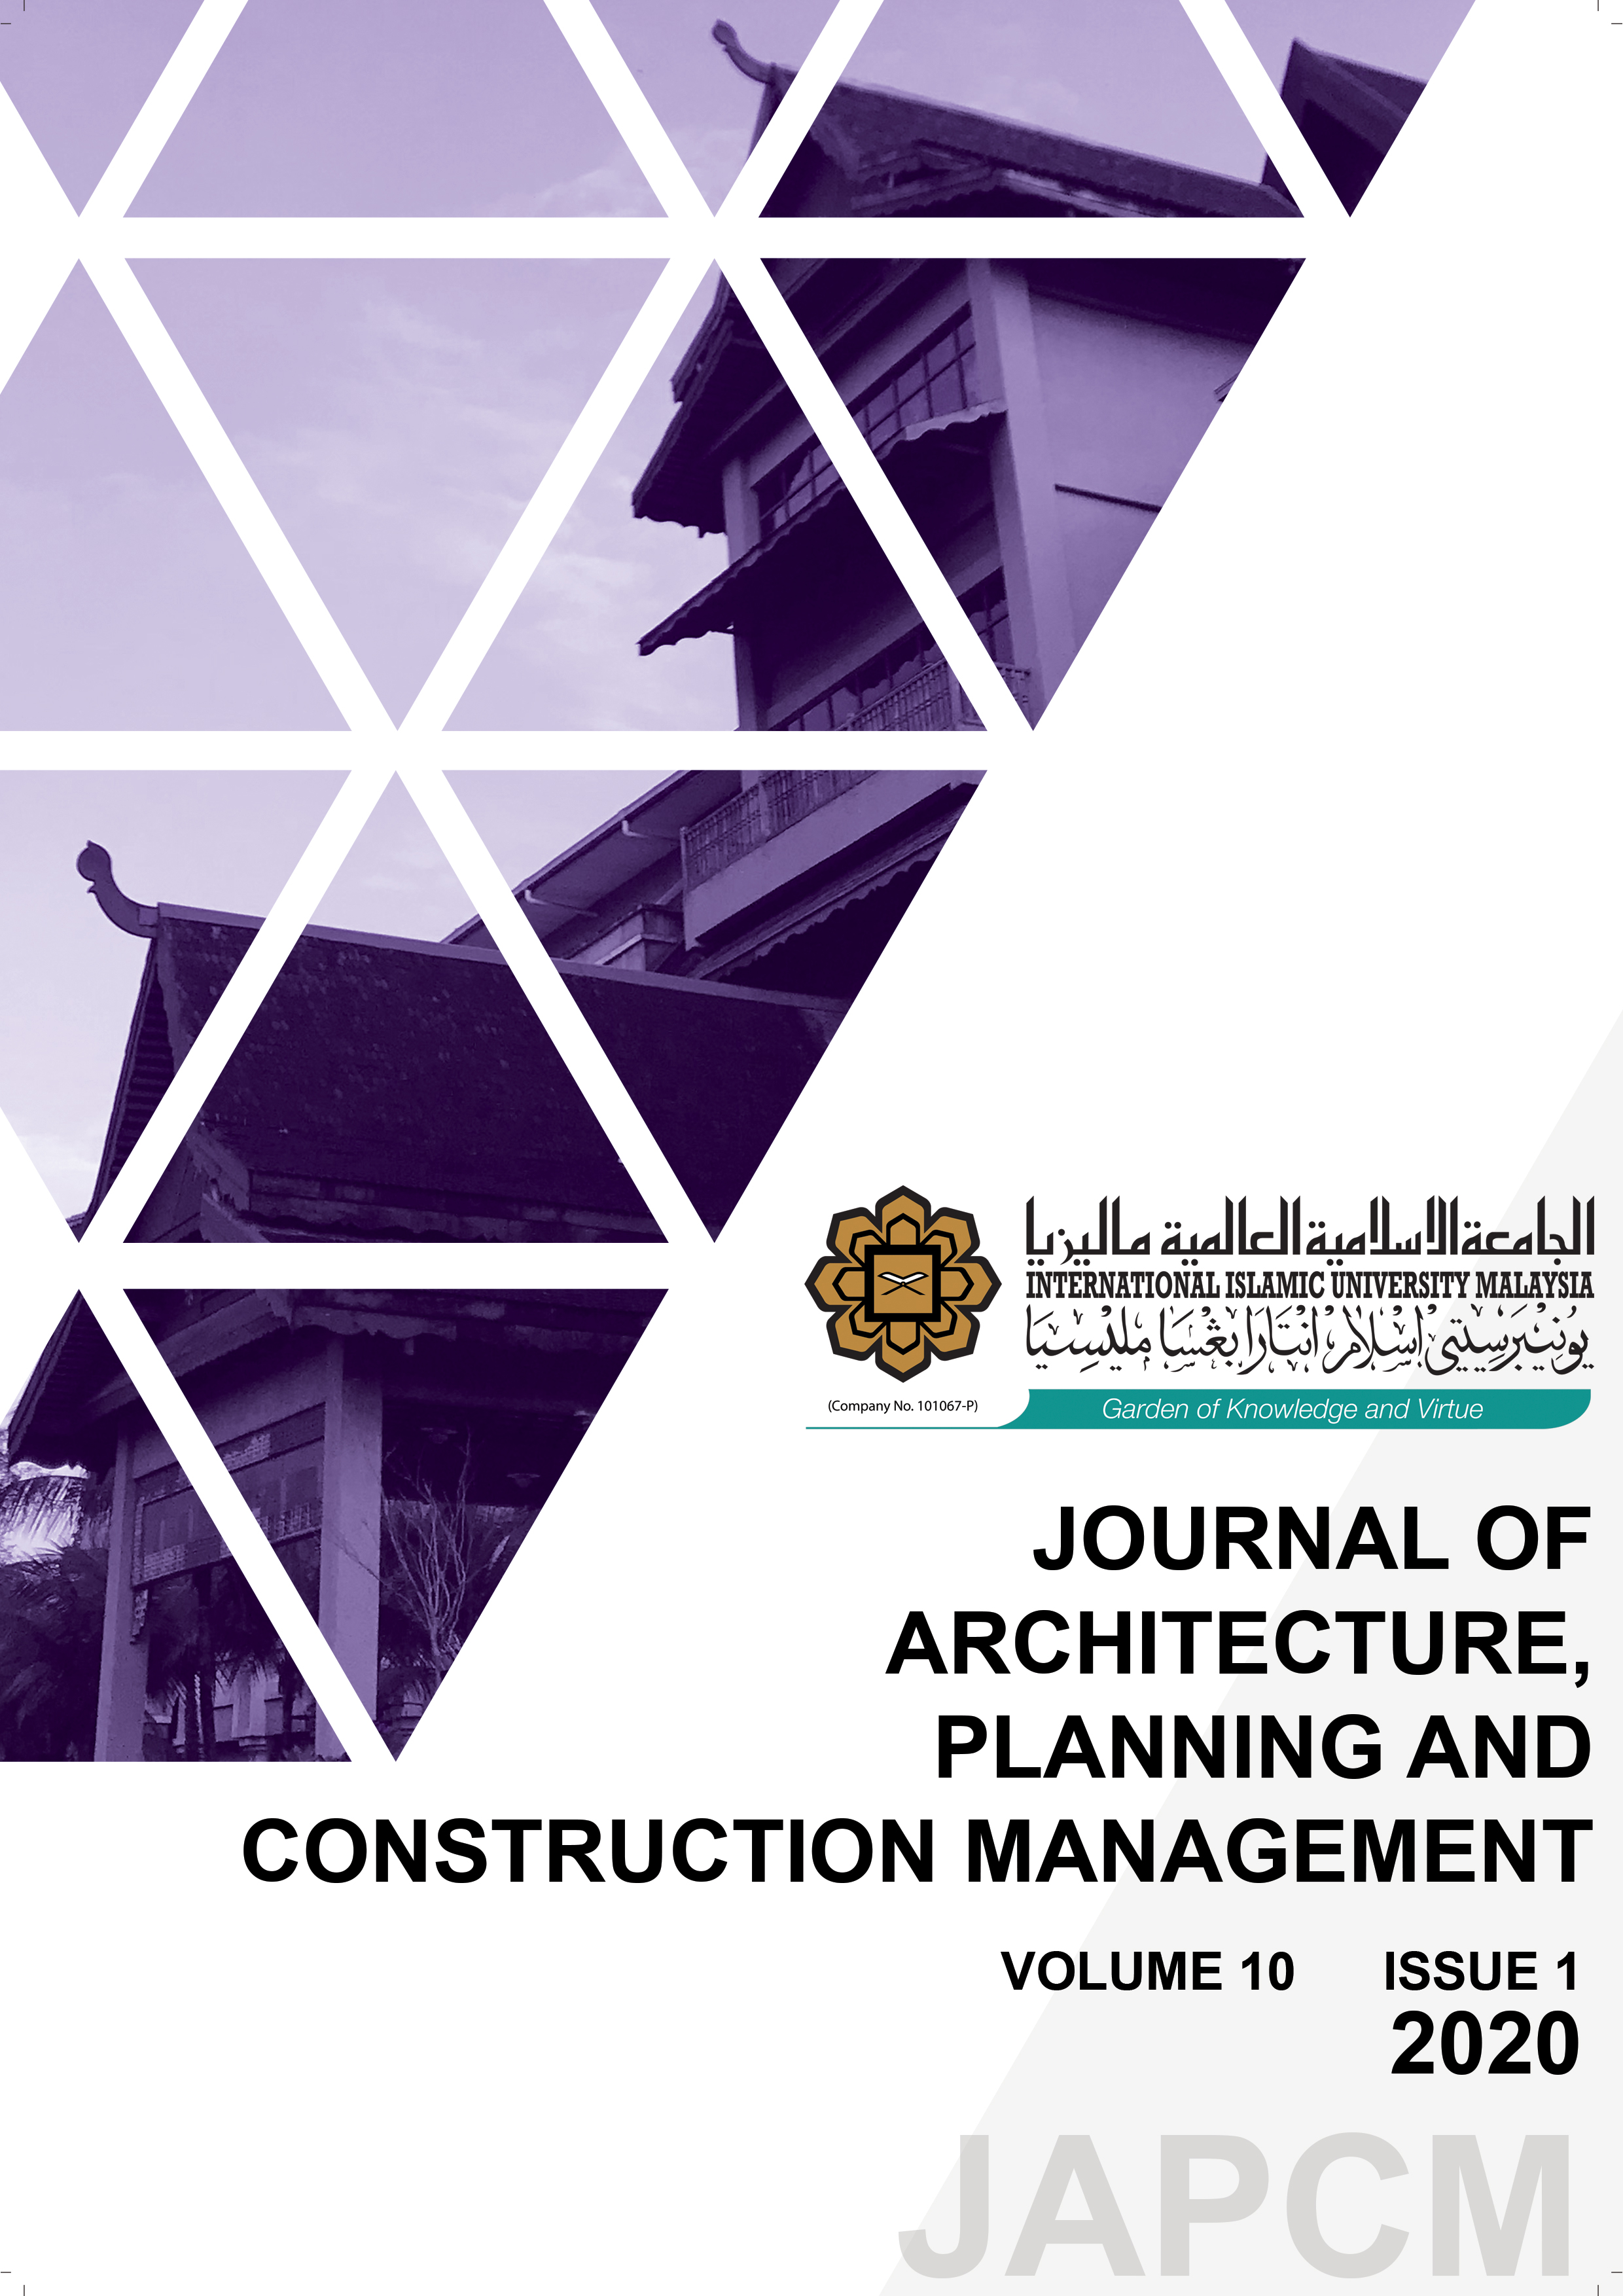 View Vol. 10 No. 1 (2020): Journal of Architecture, Planning and Construction Management